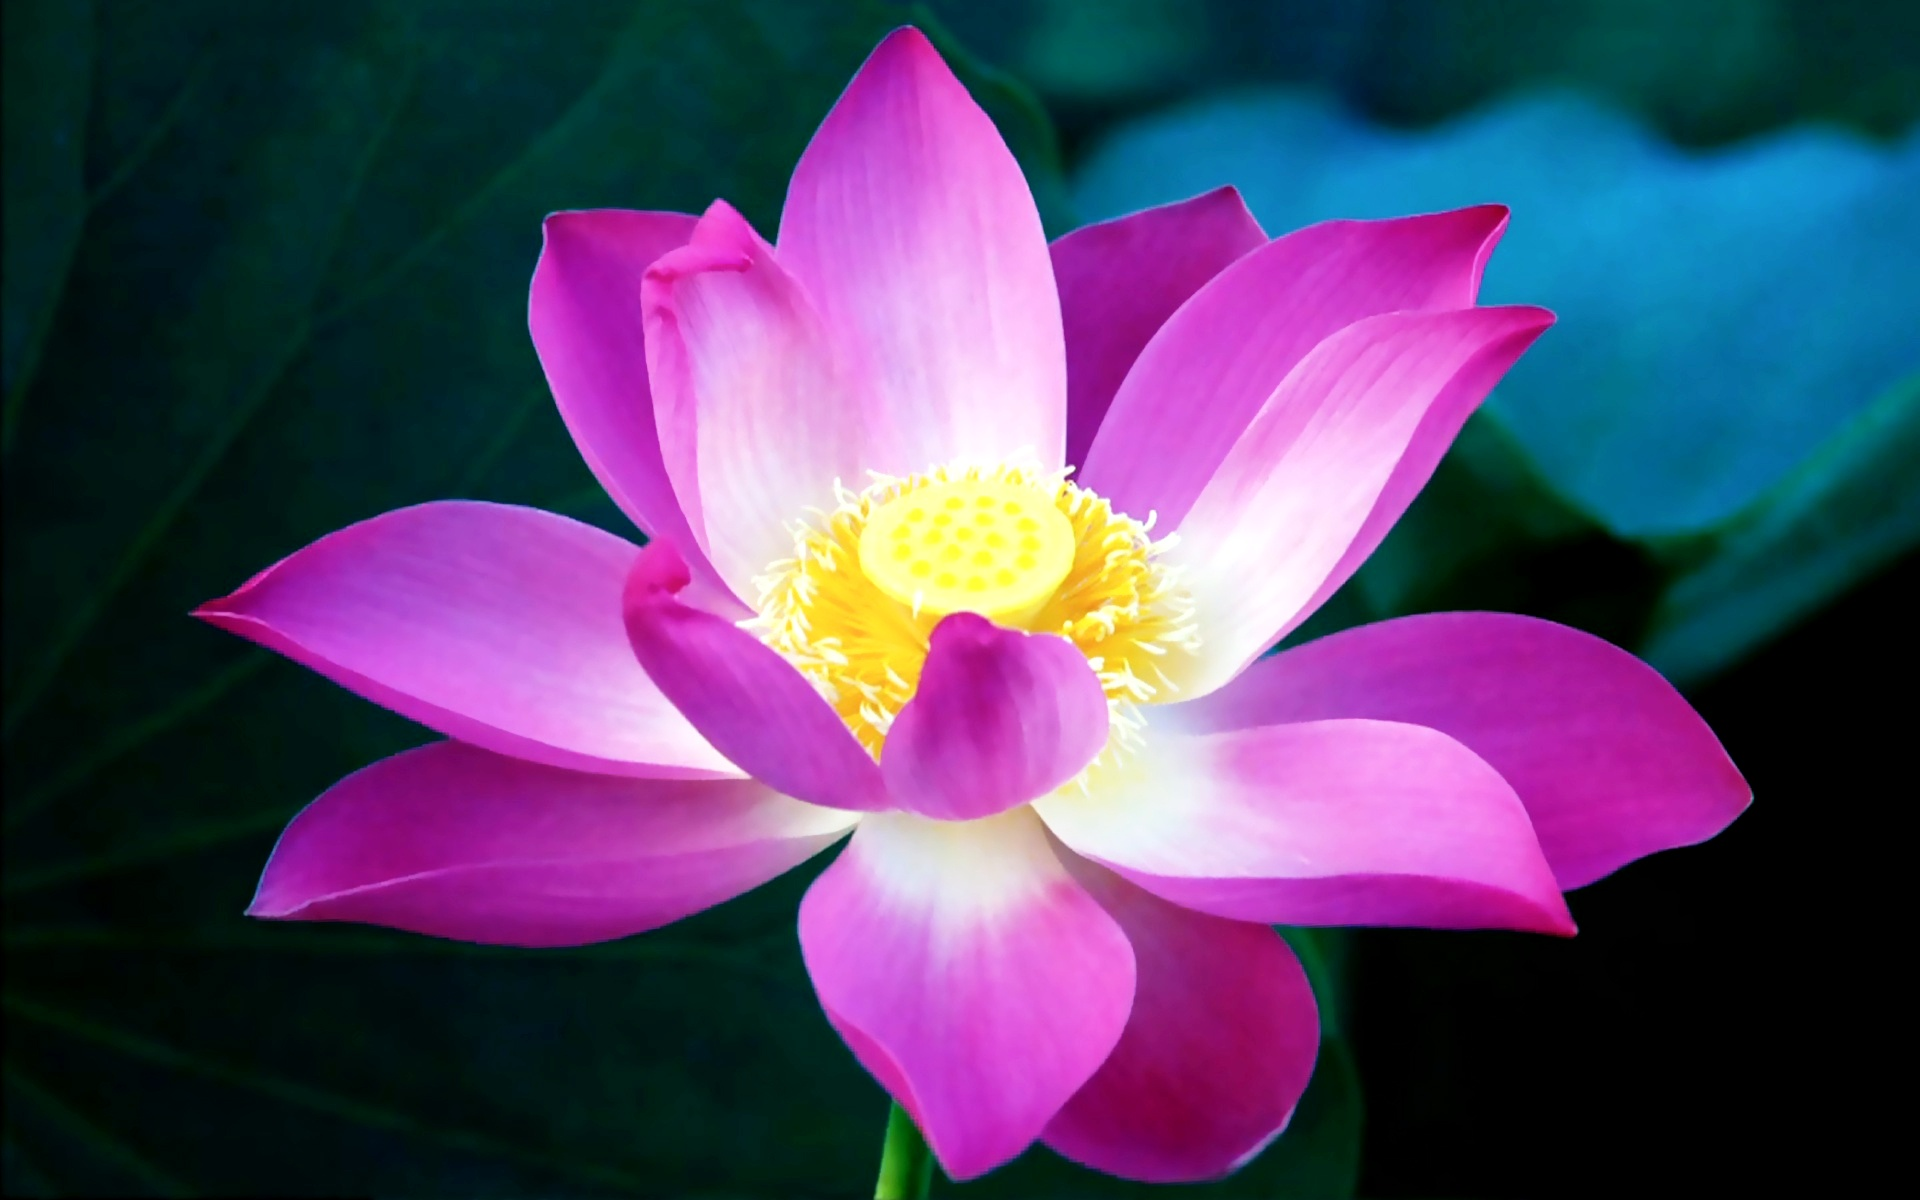 Lotus Flower Image Free.